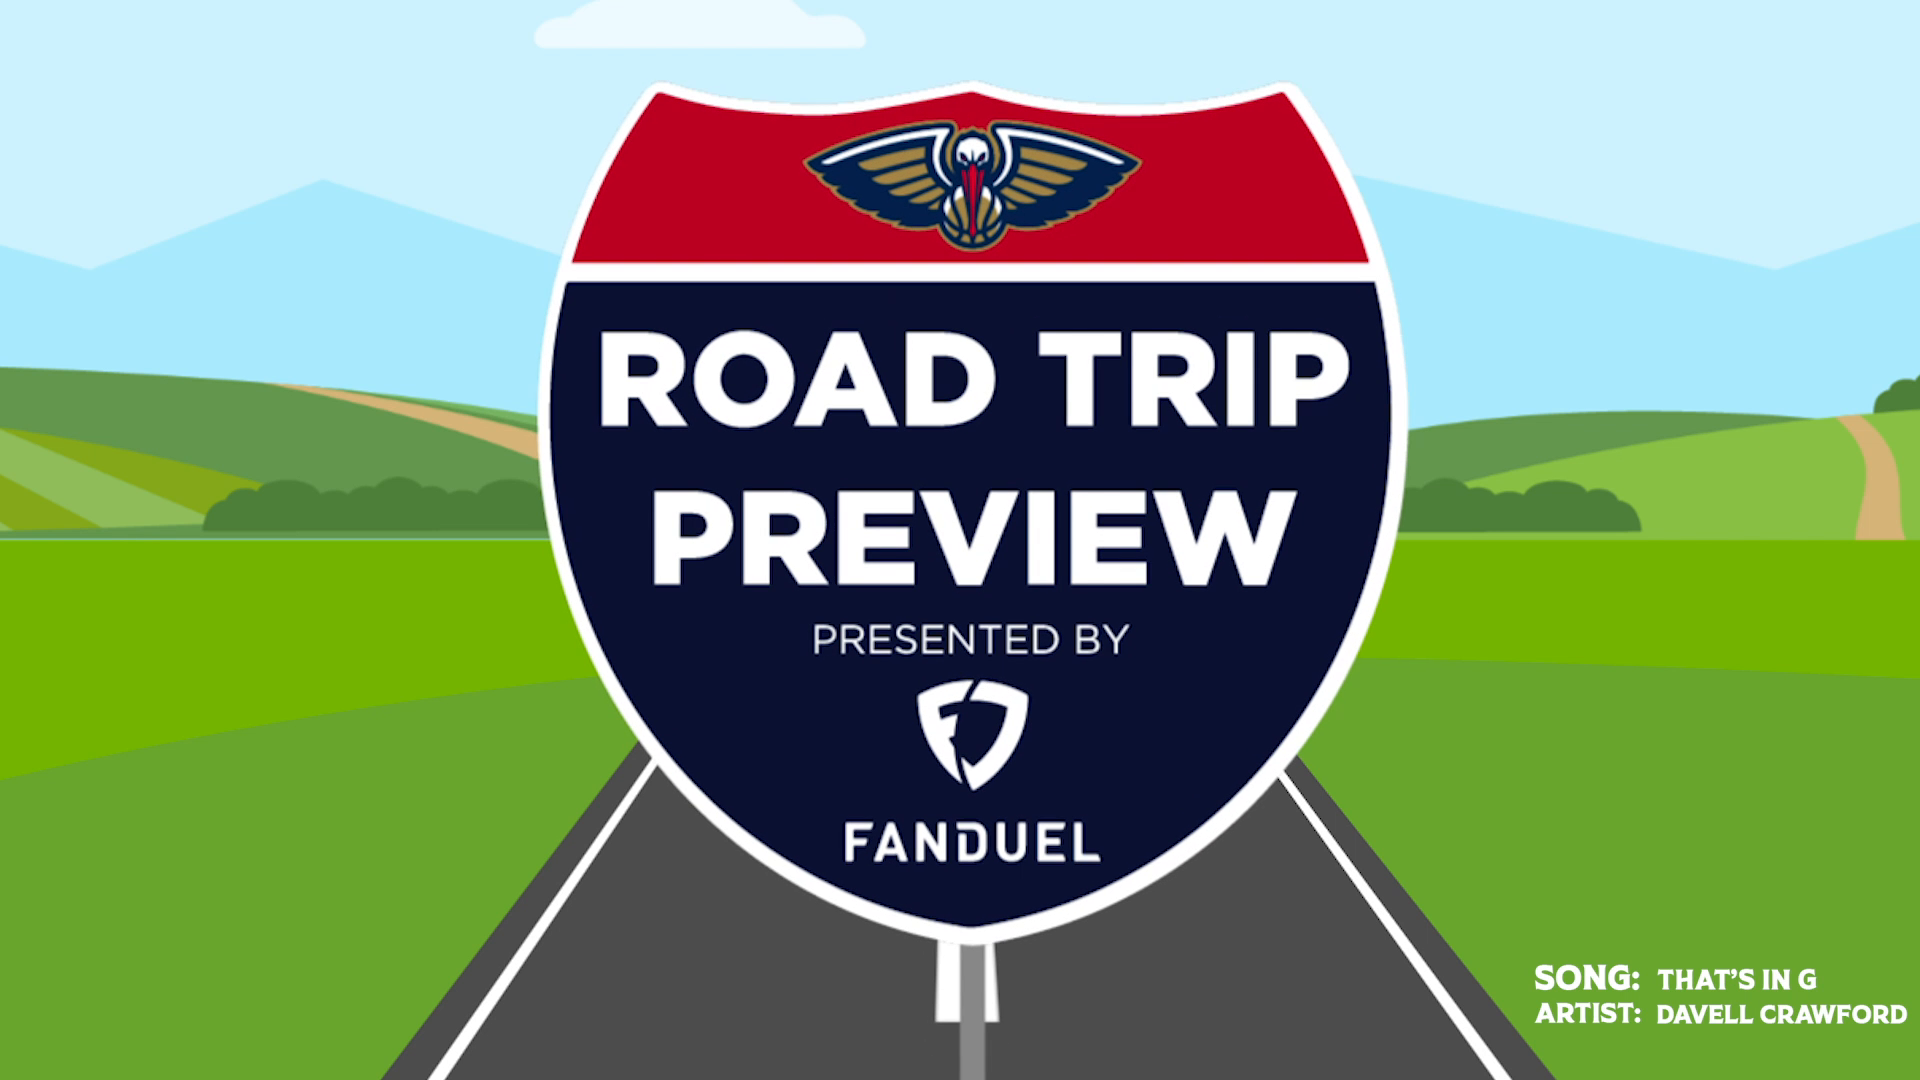 Pelicans Road Trip Preview presented by Fan Duel | San Antonio